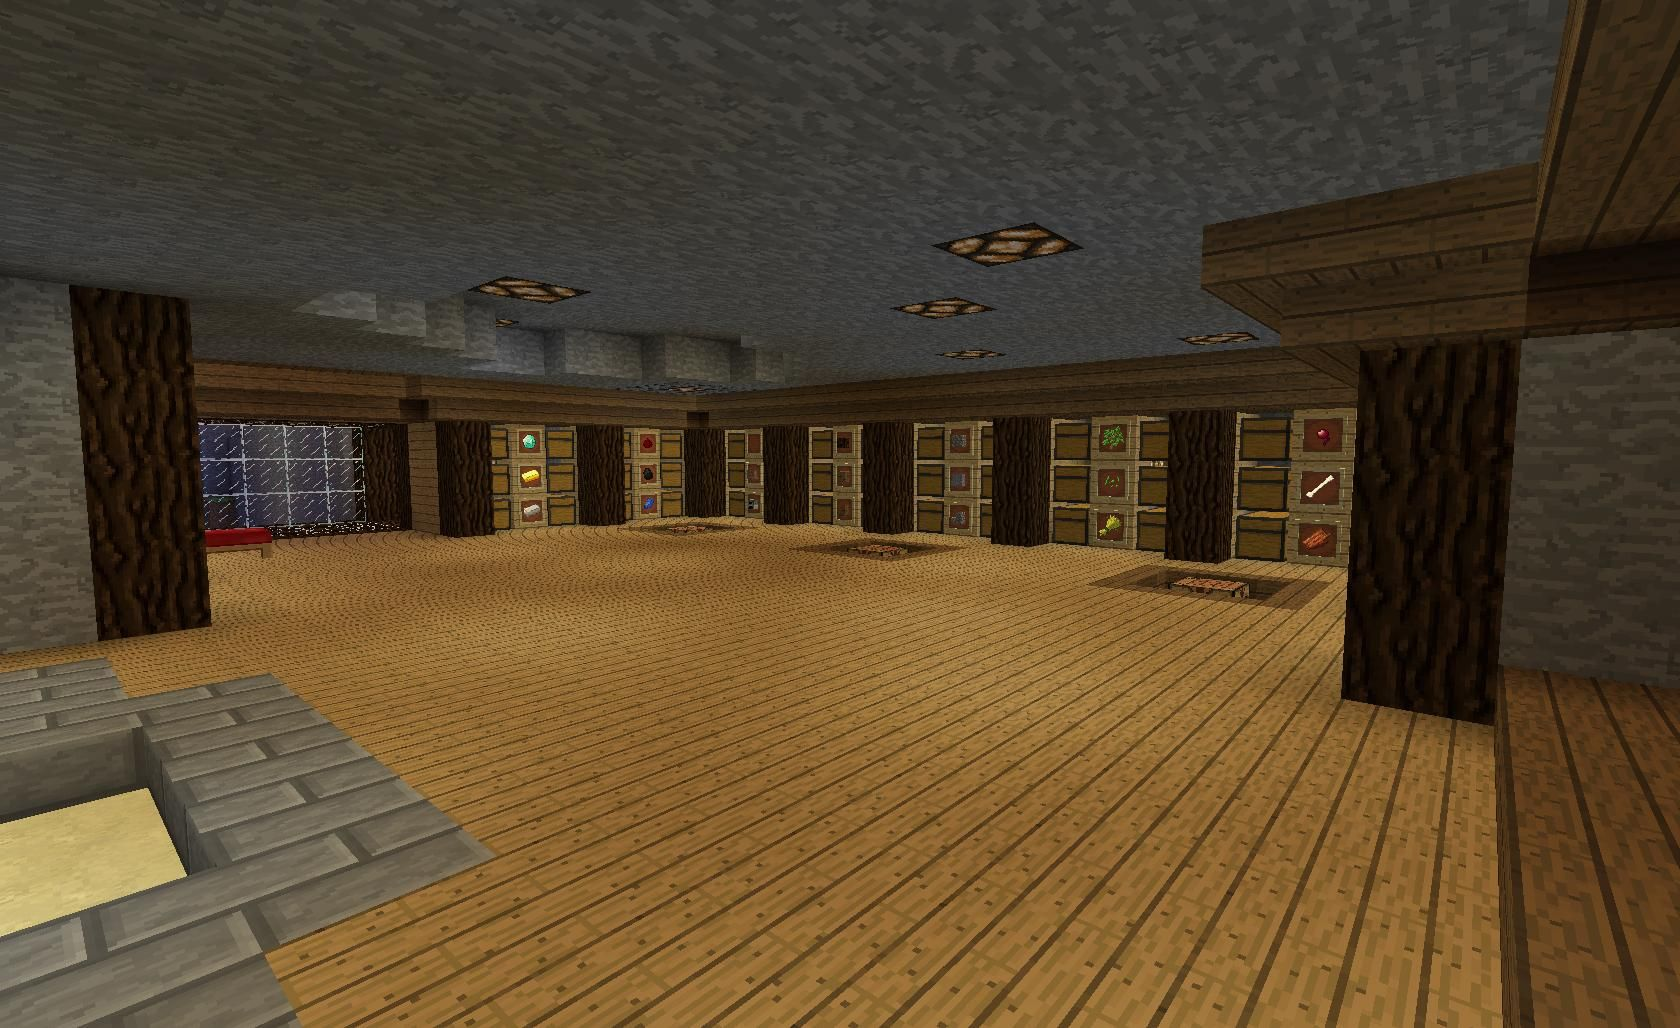 Pics Of Your Storage Room Survival Mode Minecraft Discussion Minecraft Forum Minecraft Storage Room Minecraft Storage Minecraft Survival